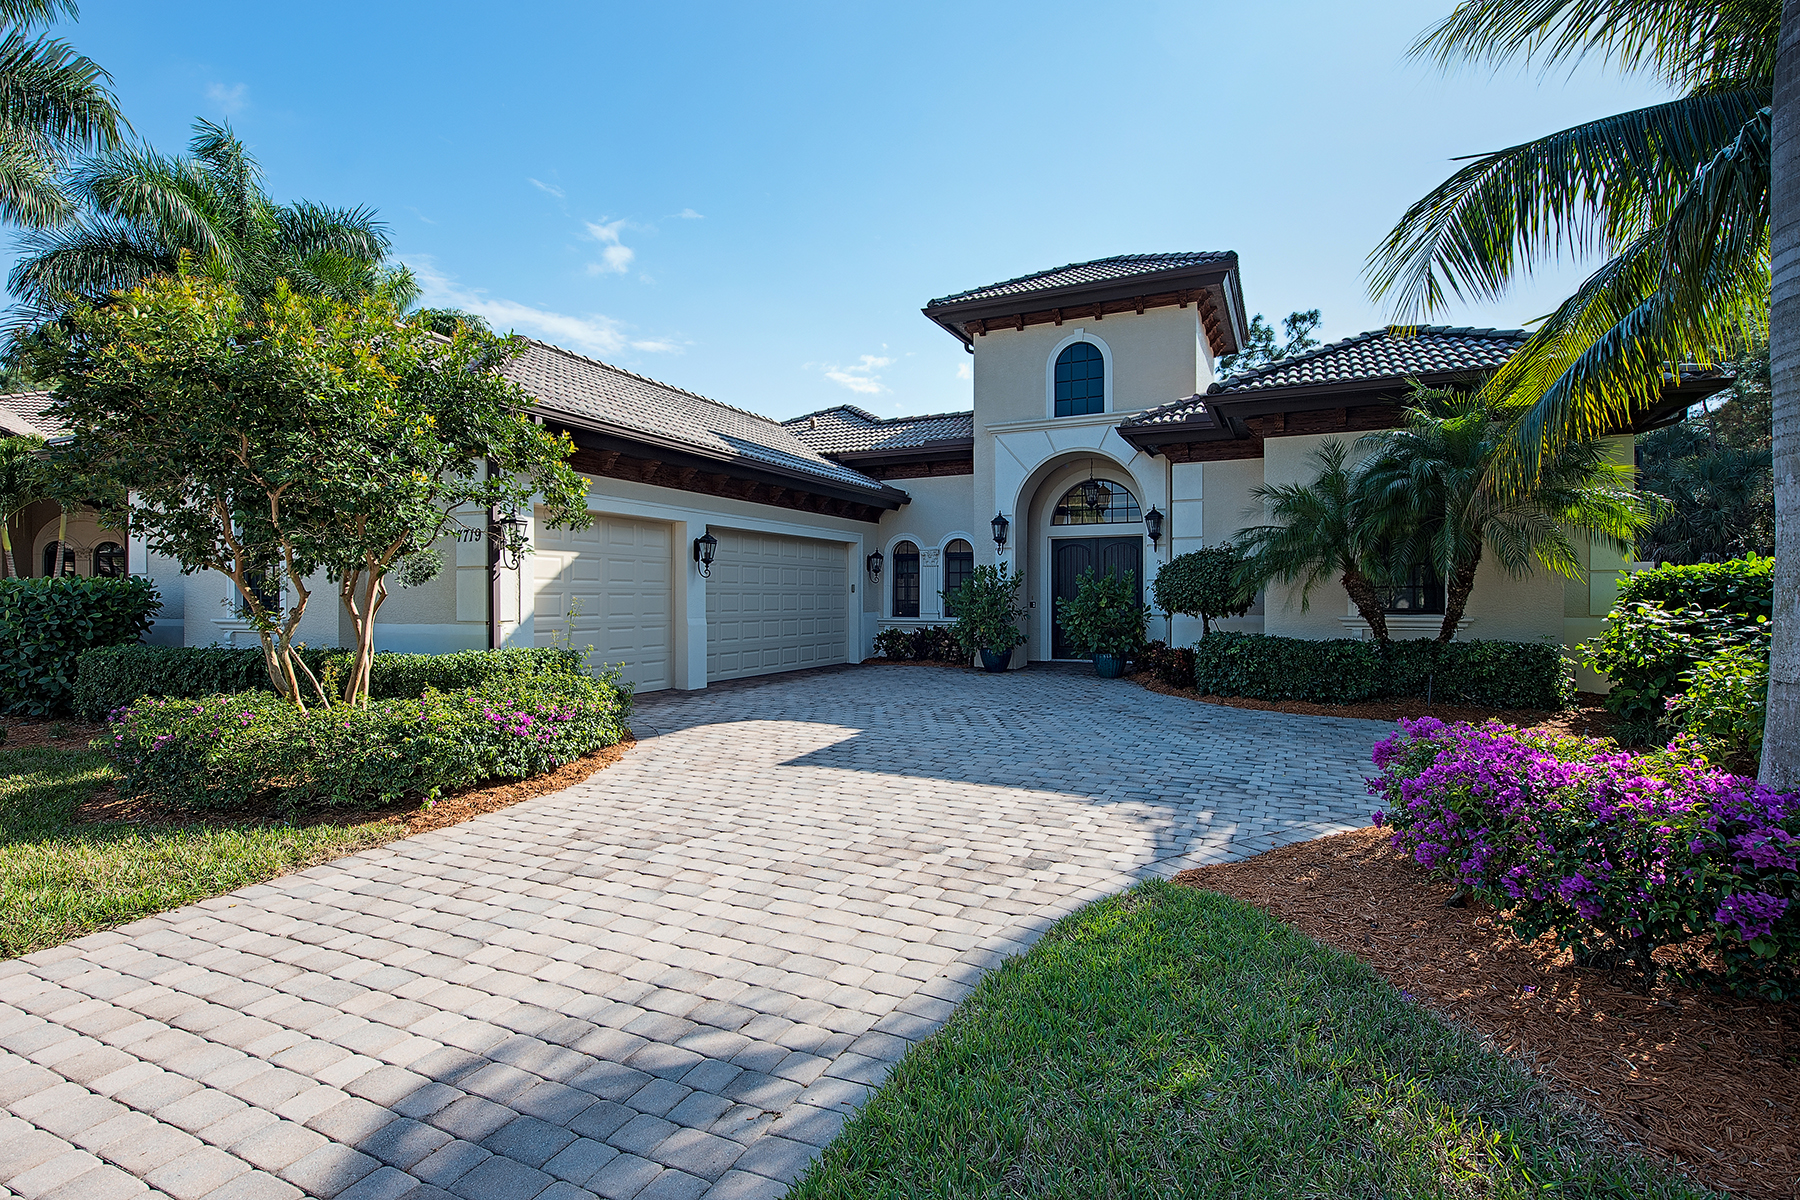 Casa Unifamiliar por un Venta en LELY RESORT - CLASSICS PLANTATION ESTATES 7719 Mickelson Ct Naples, Florida, 34113 Estados Unidos